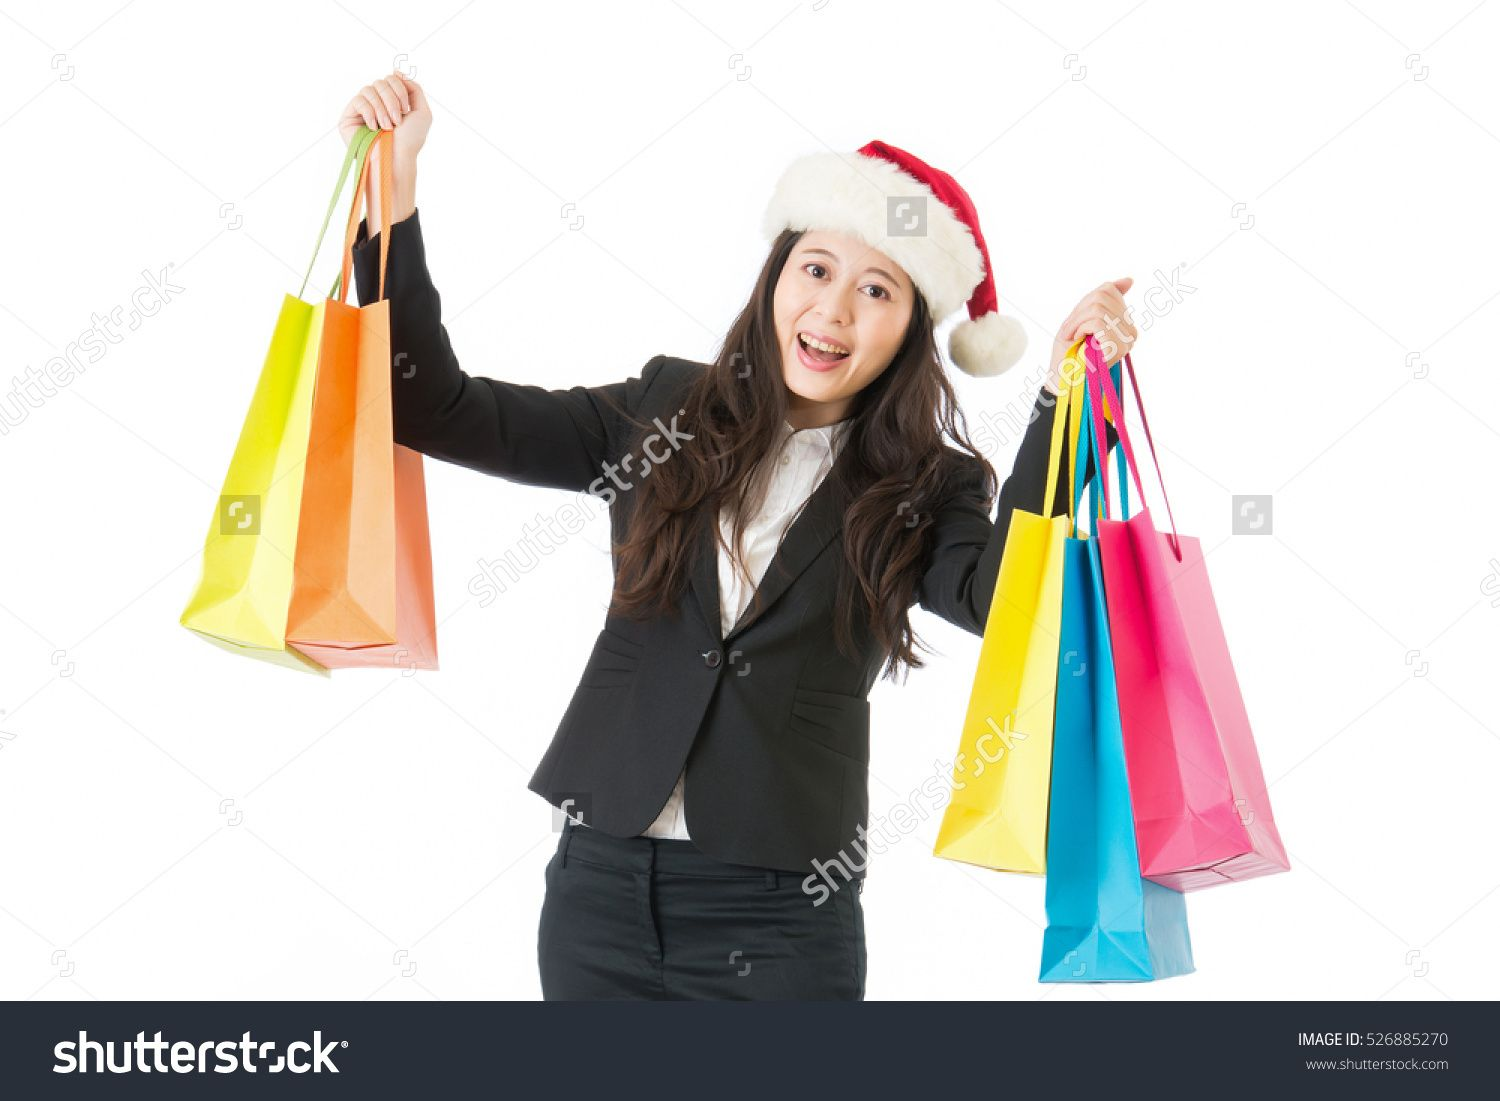 5ccc9f68066f1 Christmas Shopping Business Woman Holding Shopping Bags With Gifts. Happy  And Smiling Wearing Red Santa Hat Isolated On White Background.